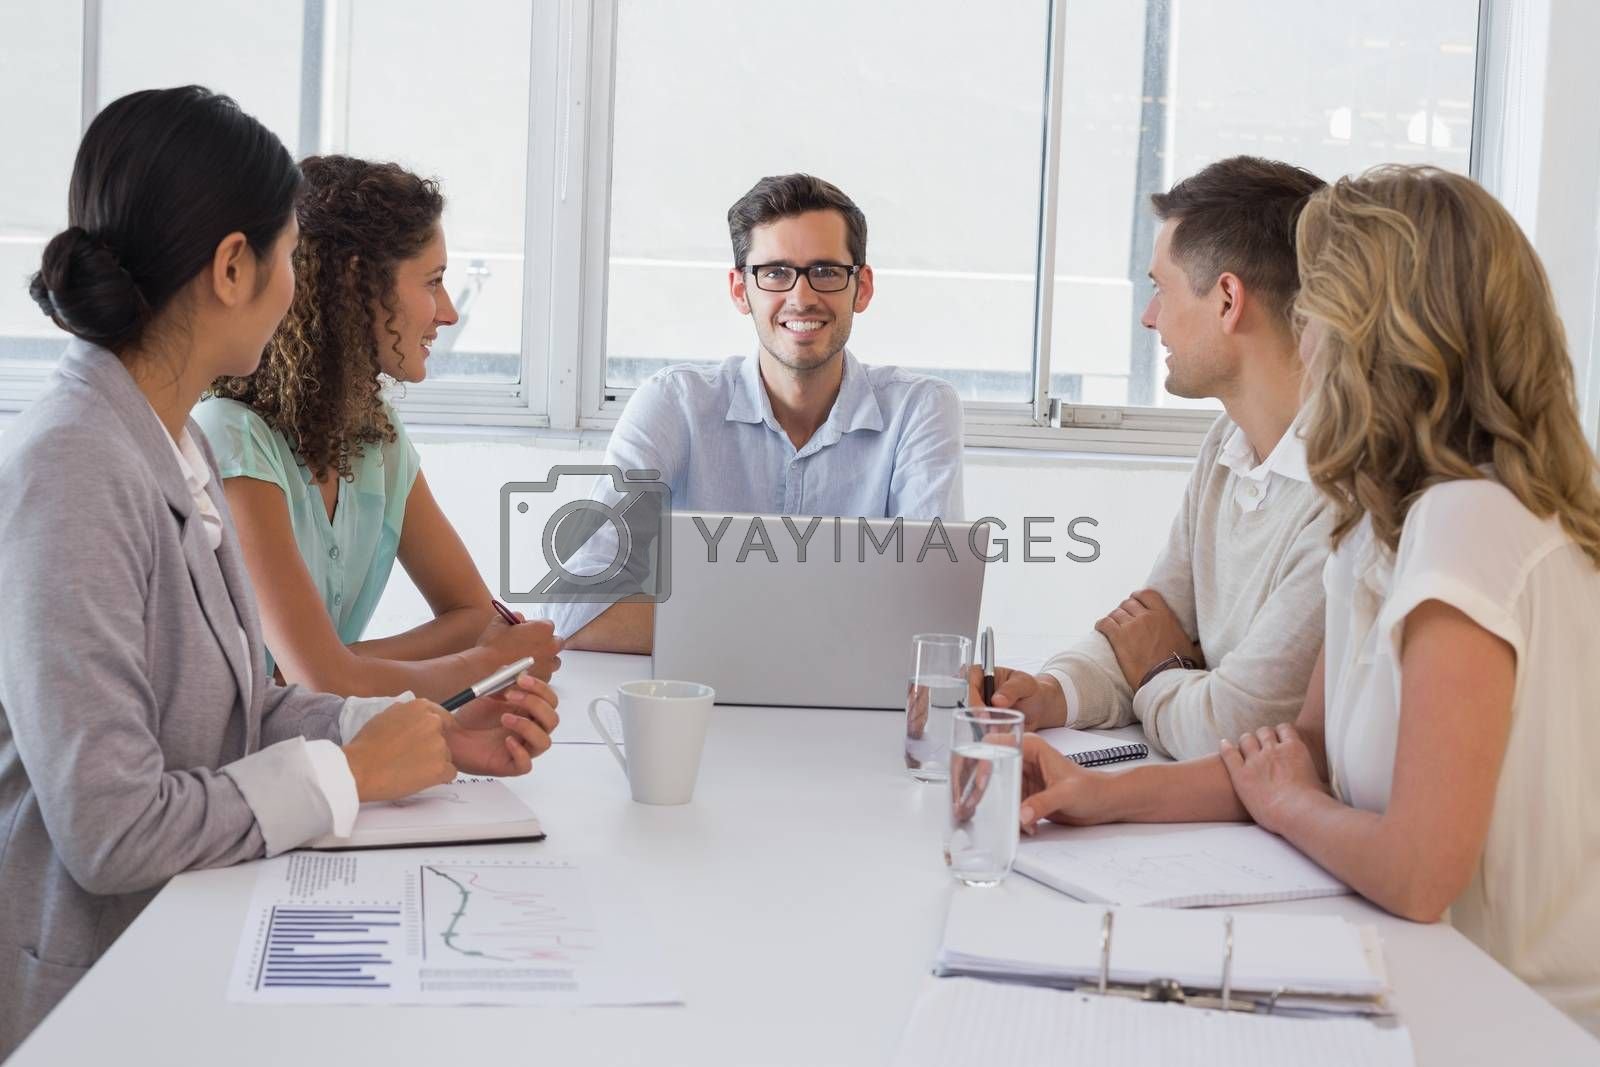 Royalty free image of Casual boss smiling at camera dueing meeting with business team by Wavebreakmedia